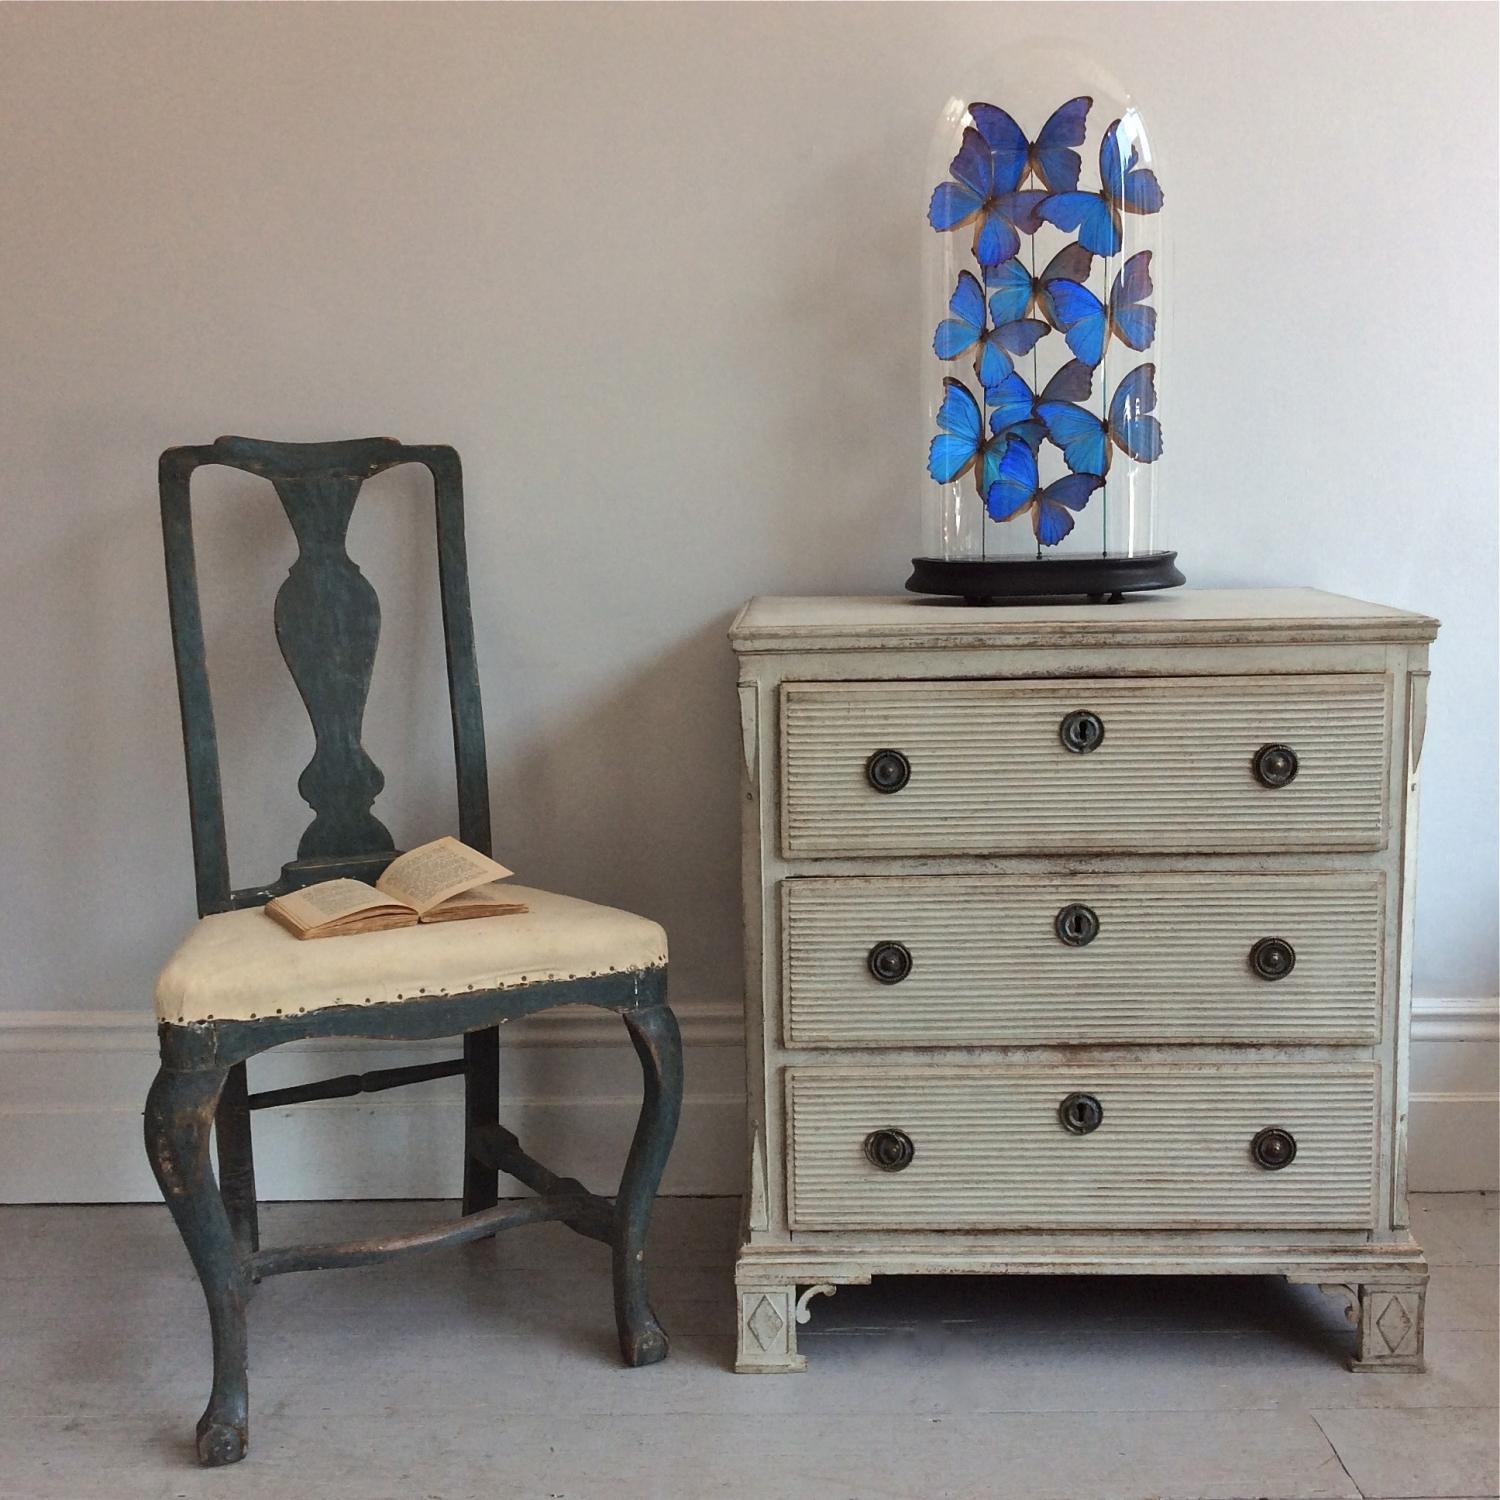 VERY RARE & RICHLY CARVED GUSTAVIAN BEDSIDE CHEST